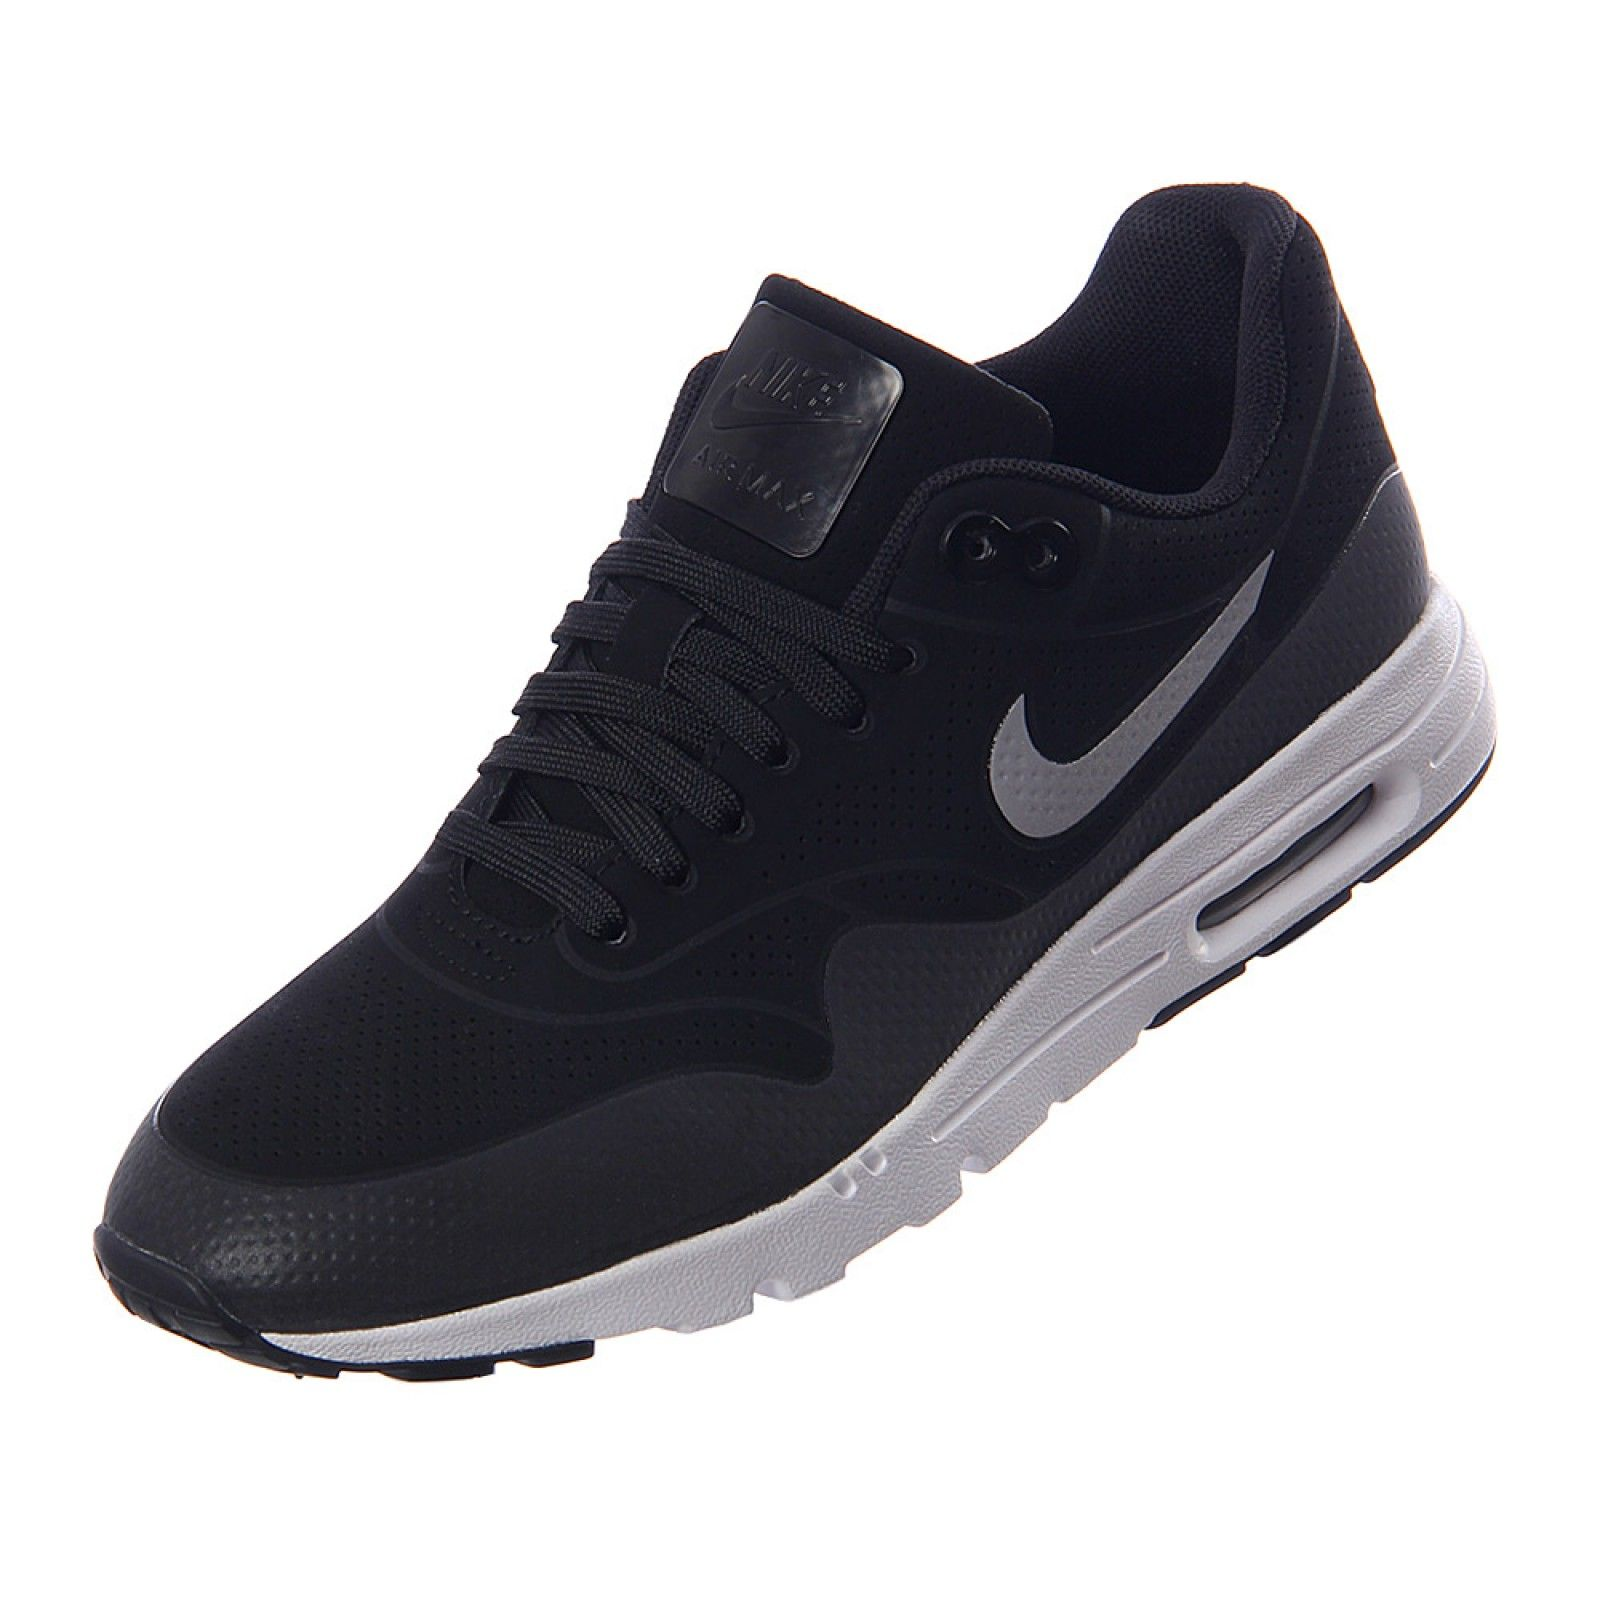 Nike Air Max 1 Ultra Moire Mujer Innovasport shoes! Pinterest